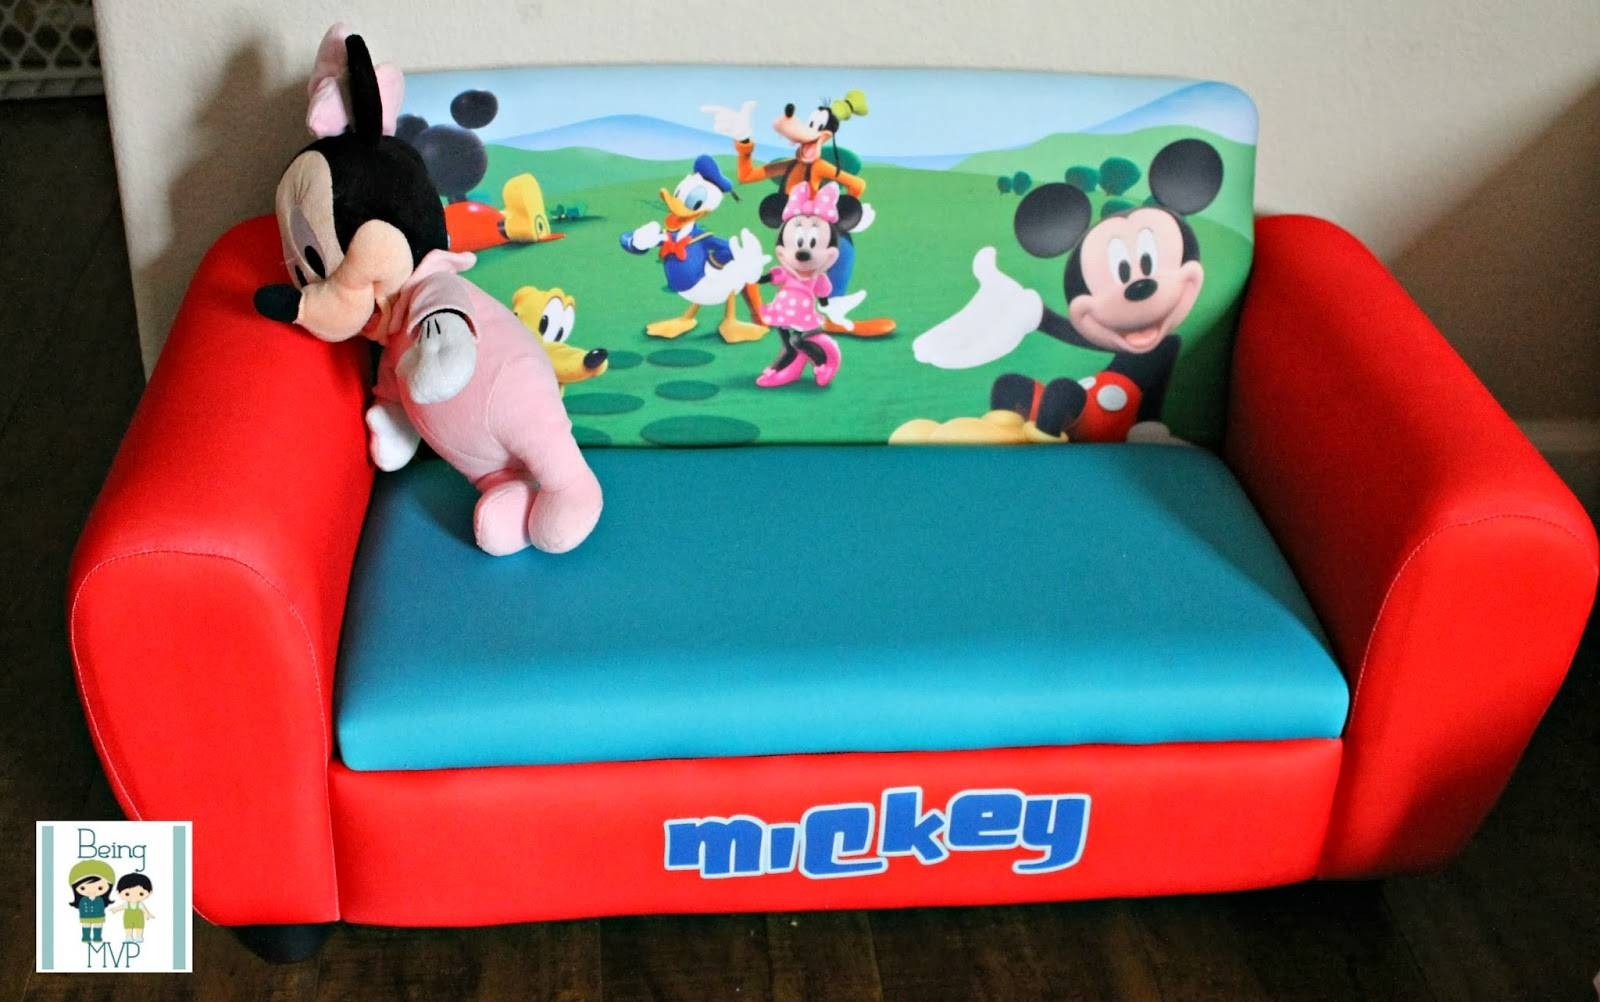 Being Mvp: Mickey Mouse Upholstered Sofa For Tiny Tots To Chill On regarding Mickey Fold Out Couches (Image 5 of 15)